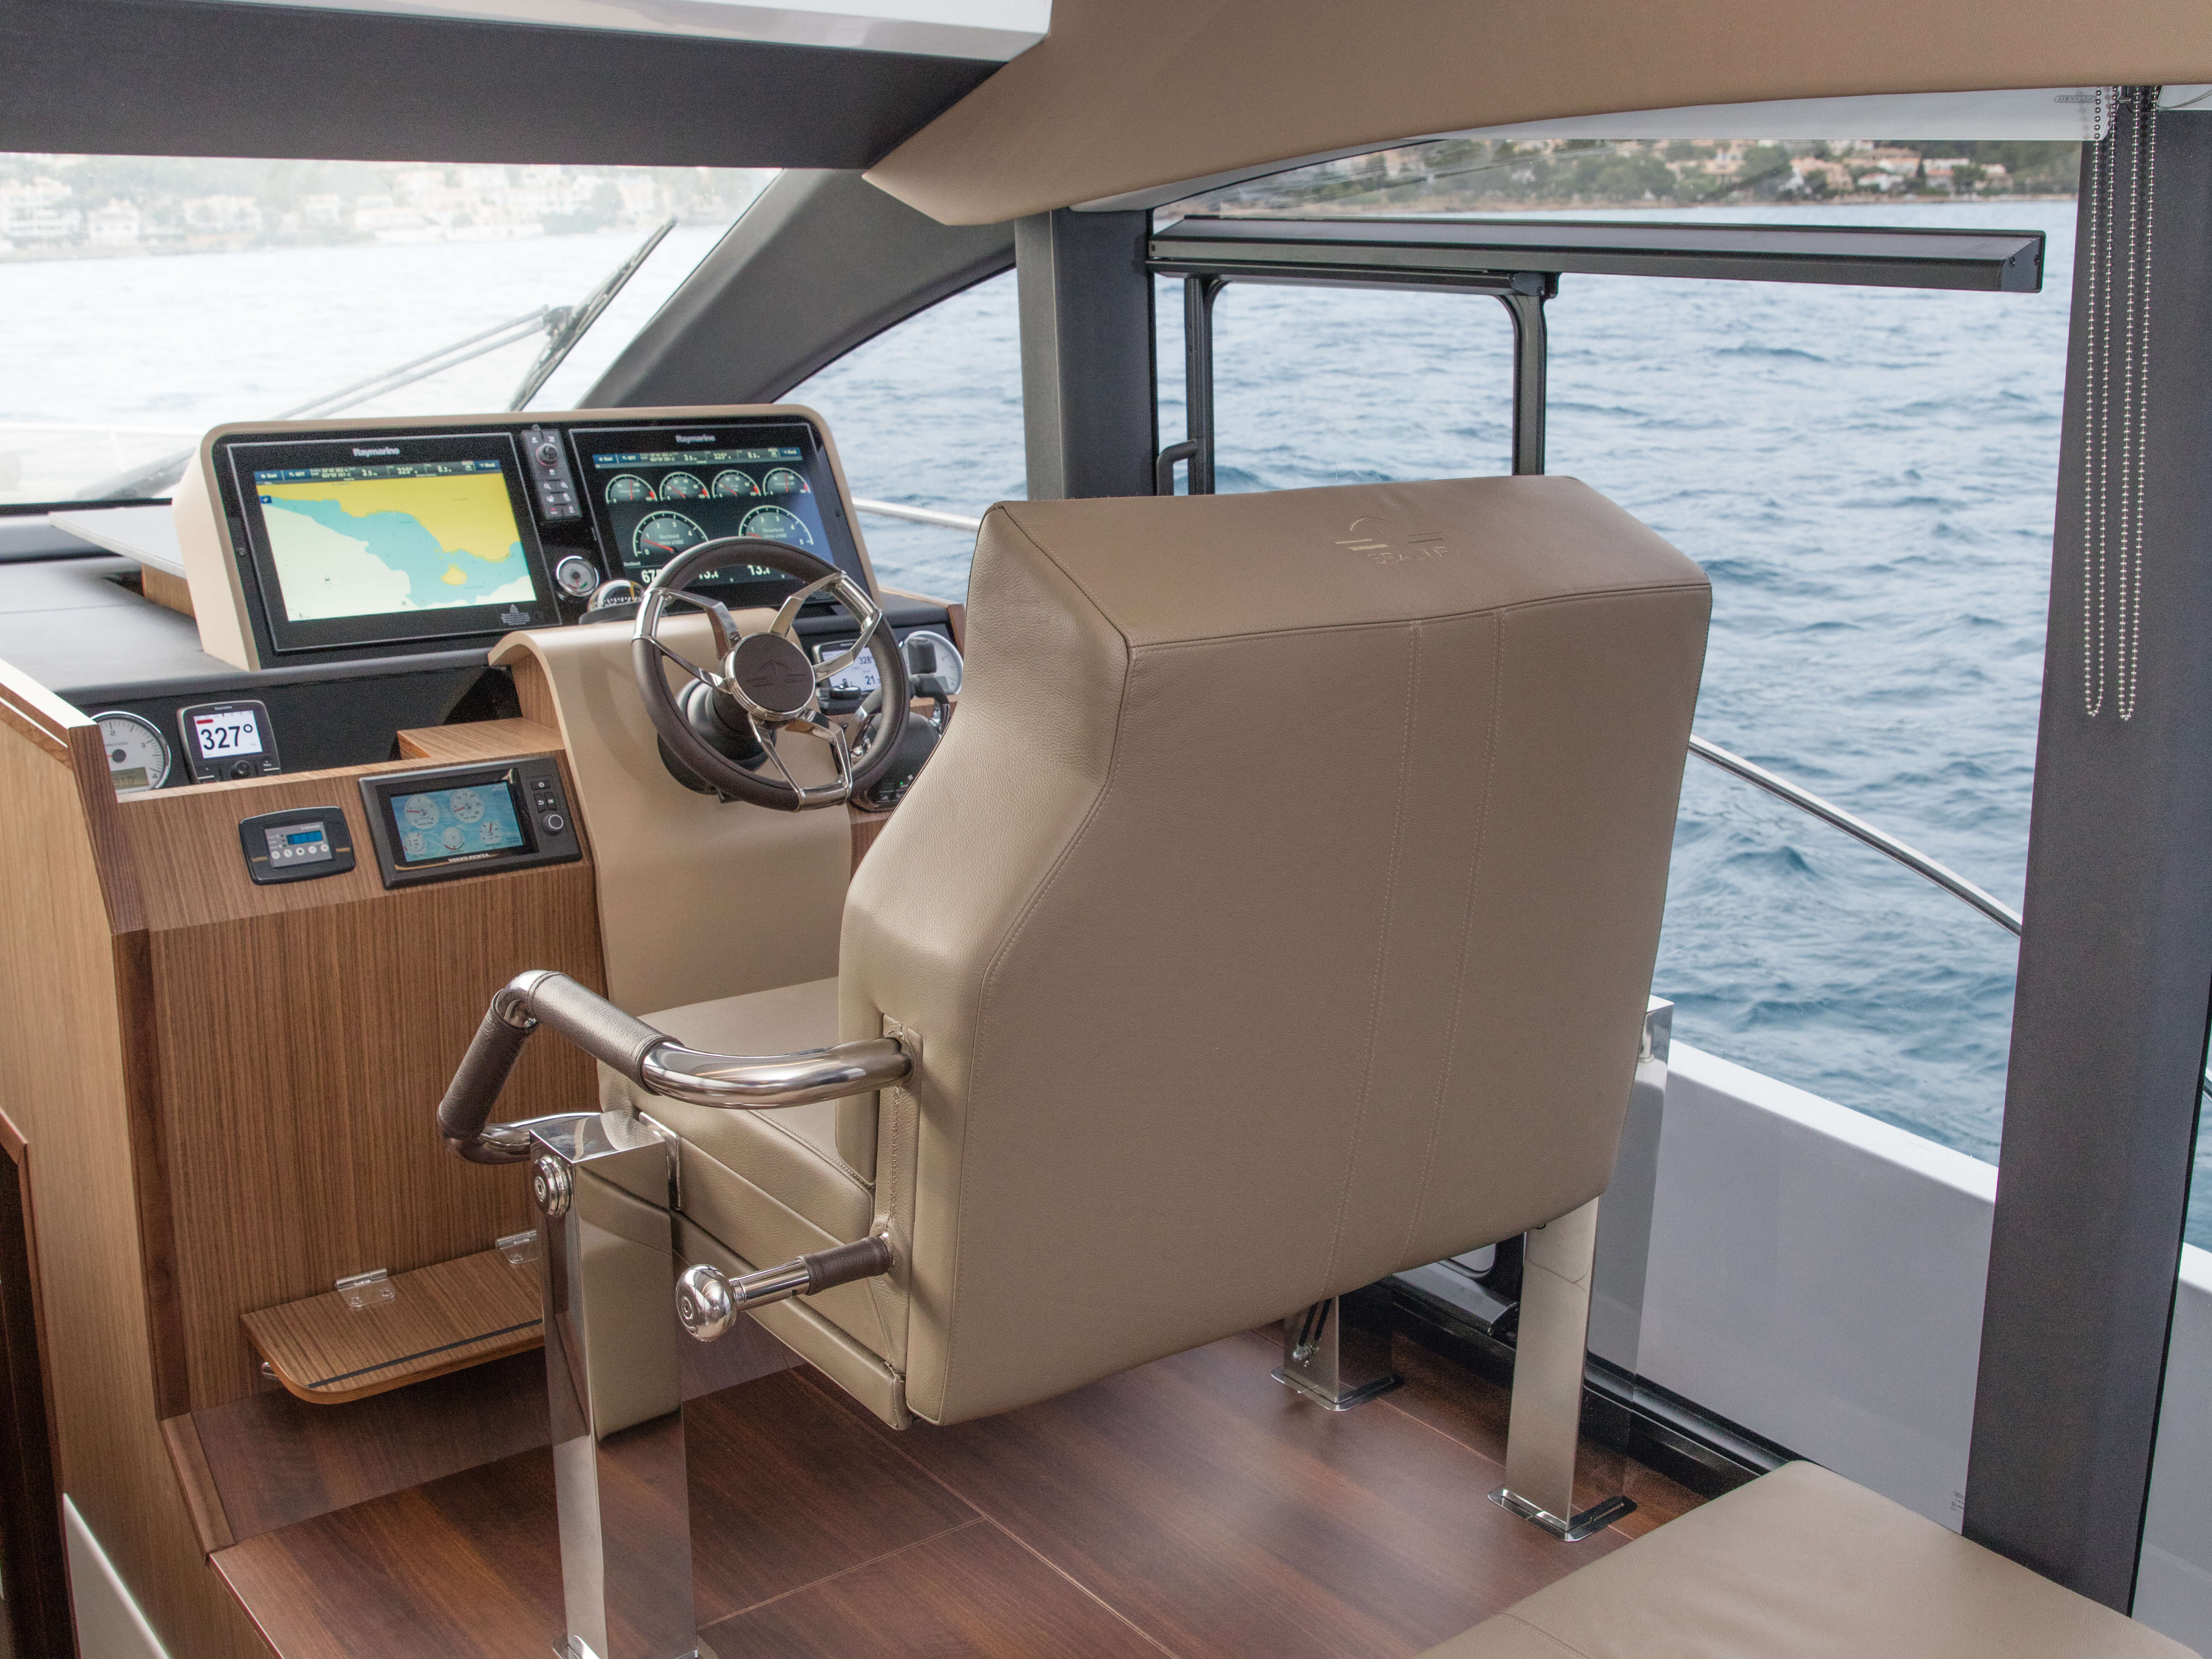 Sealine F530 Interior | Sealine_F530_Interior_05_salon_041.jpg | Sealine